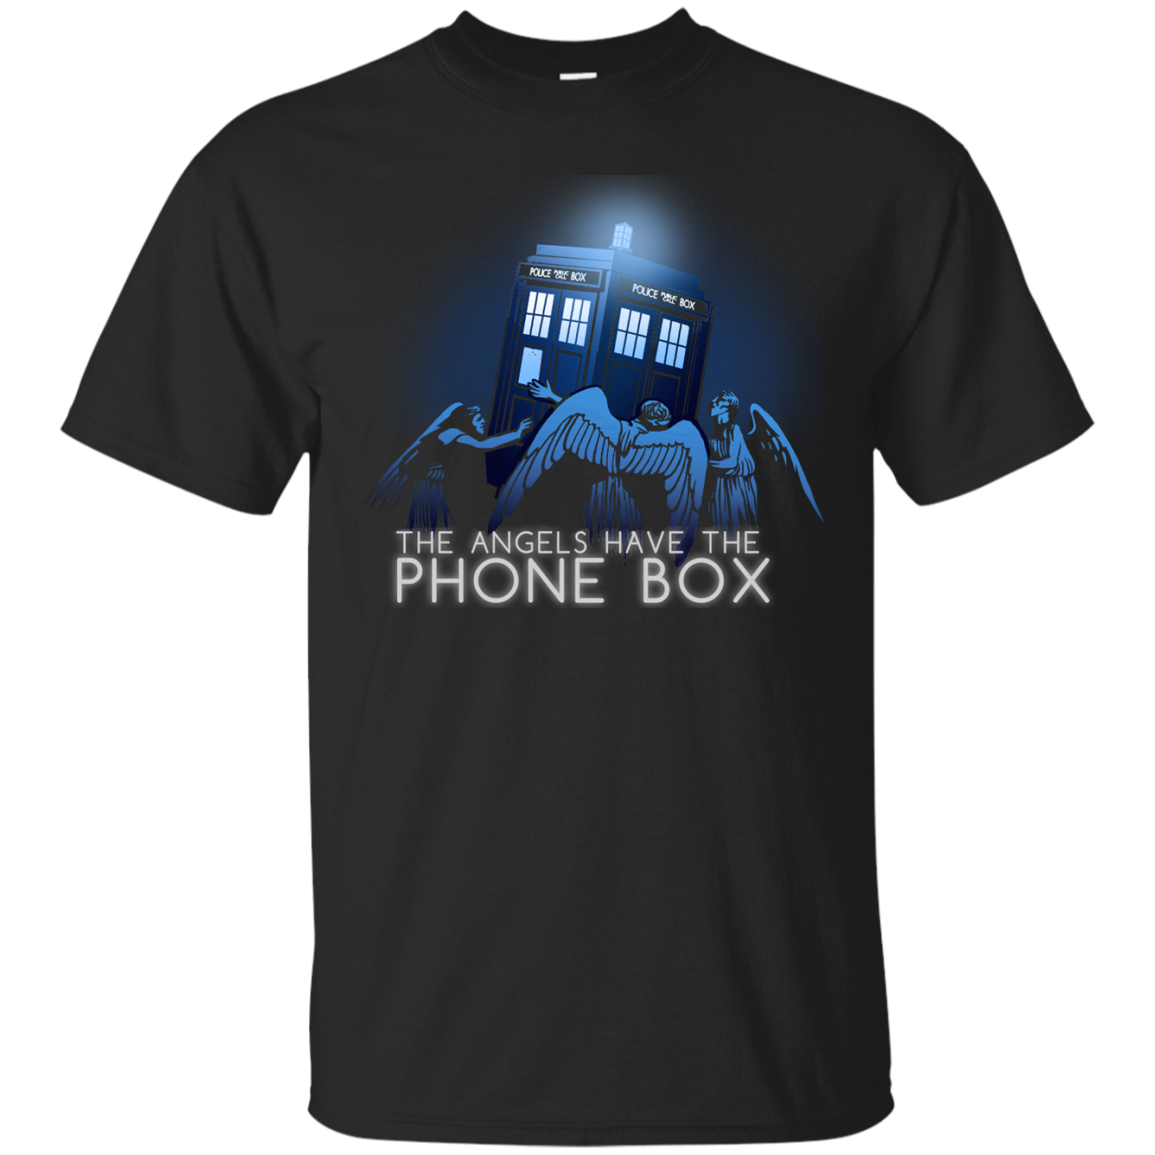 Find The Angels Have The Phone Box T Shirt